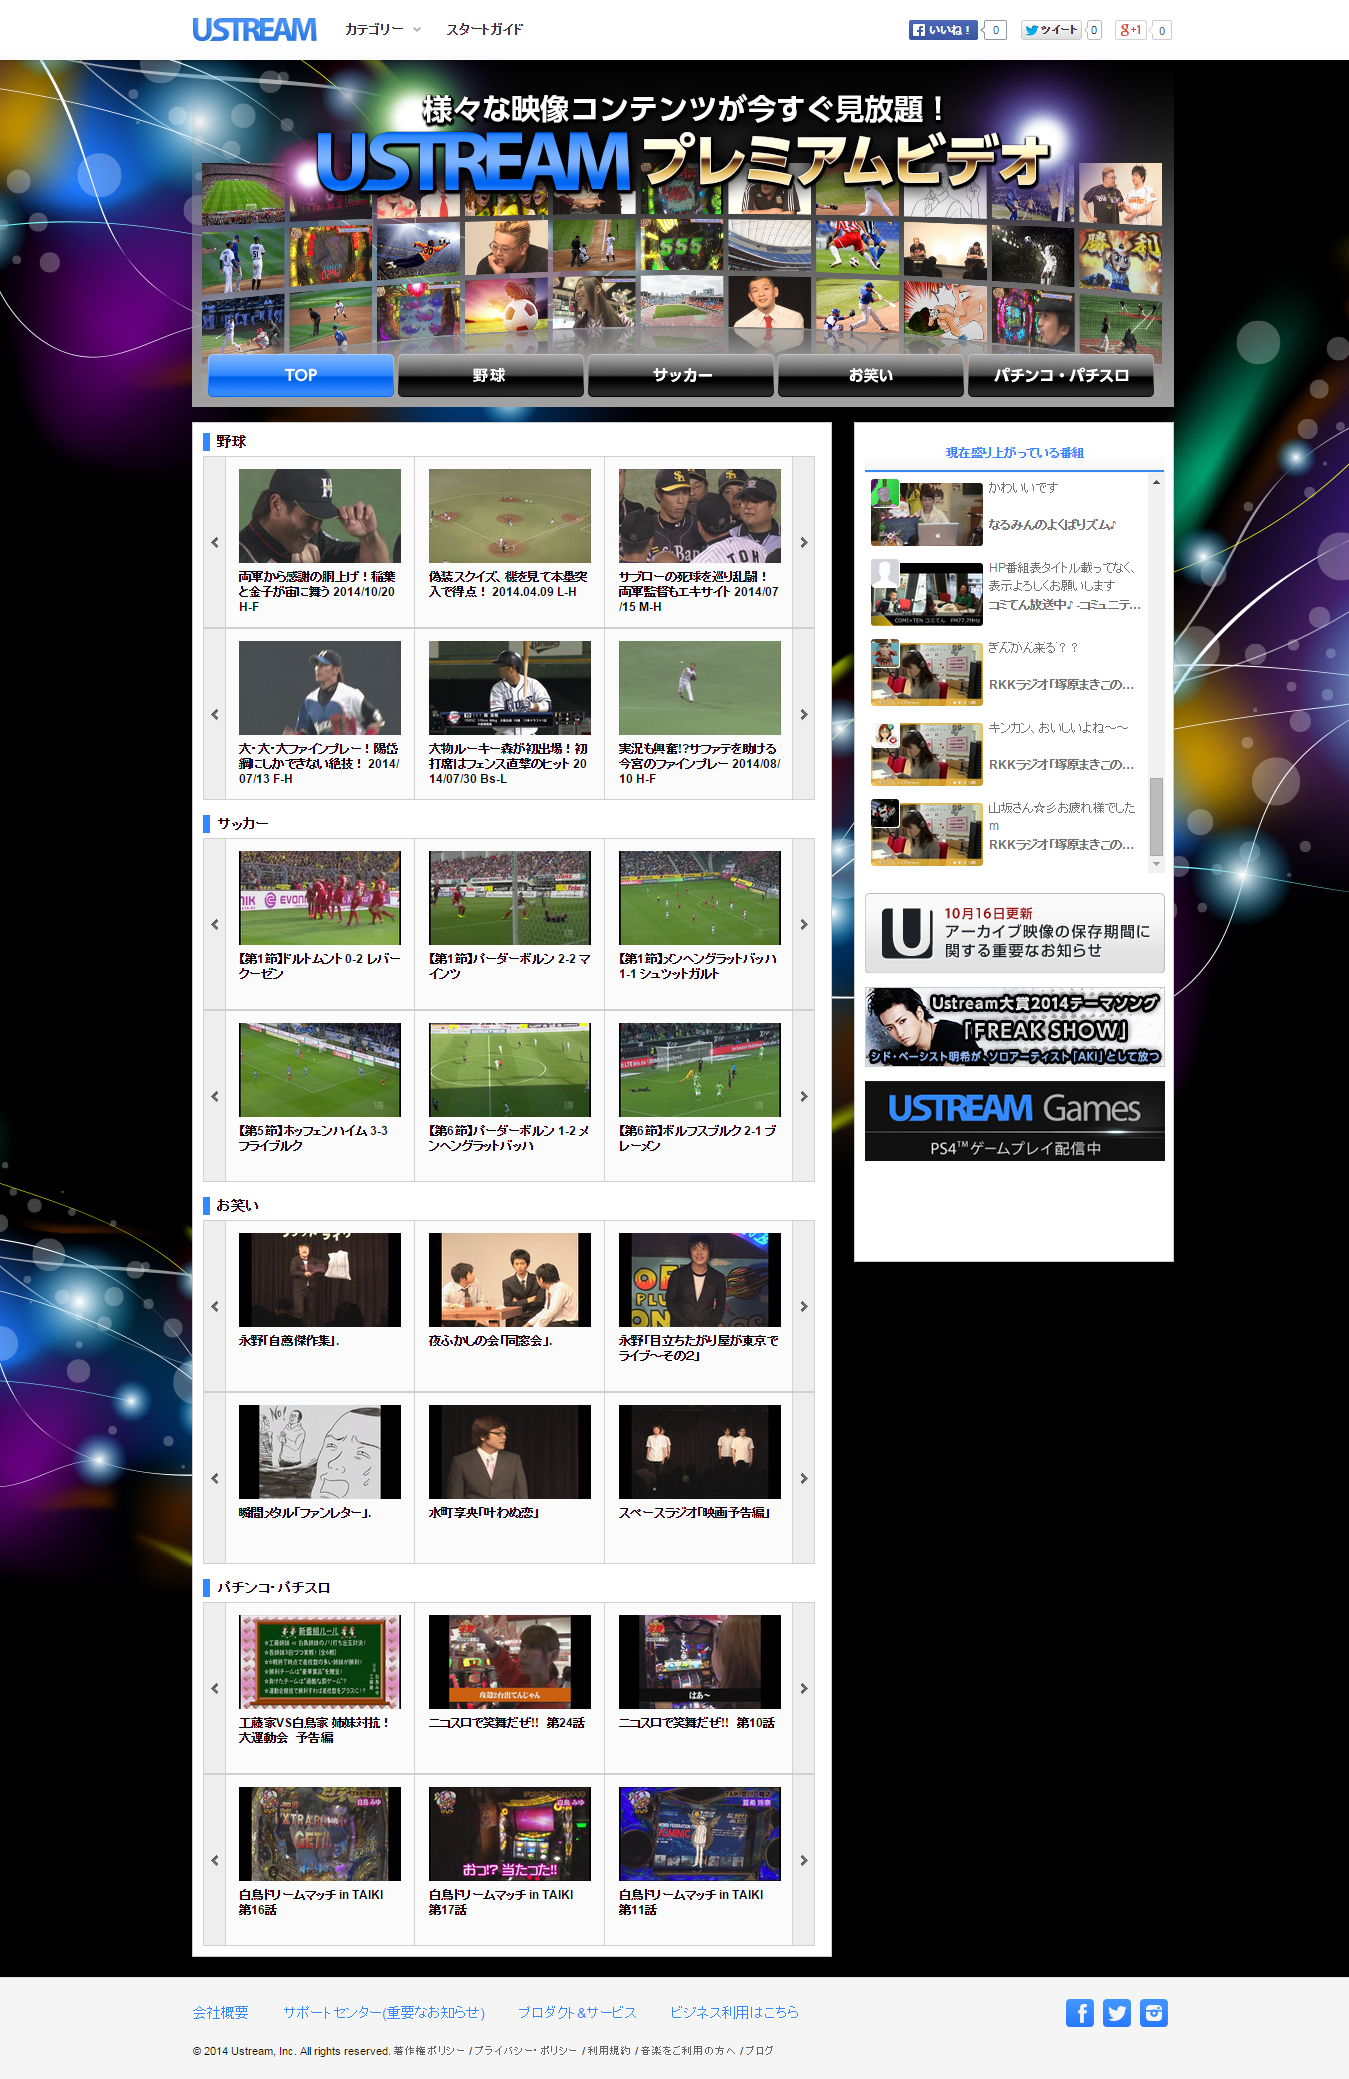 Ustream Premium Video Top Page